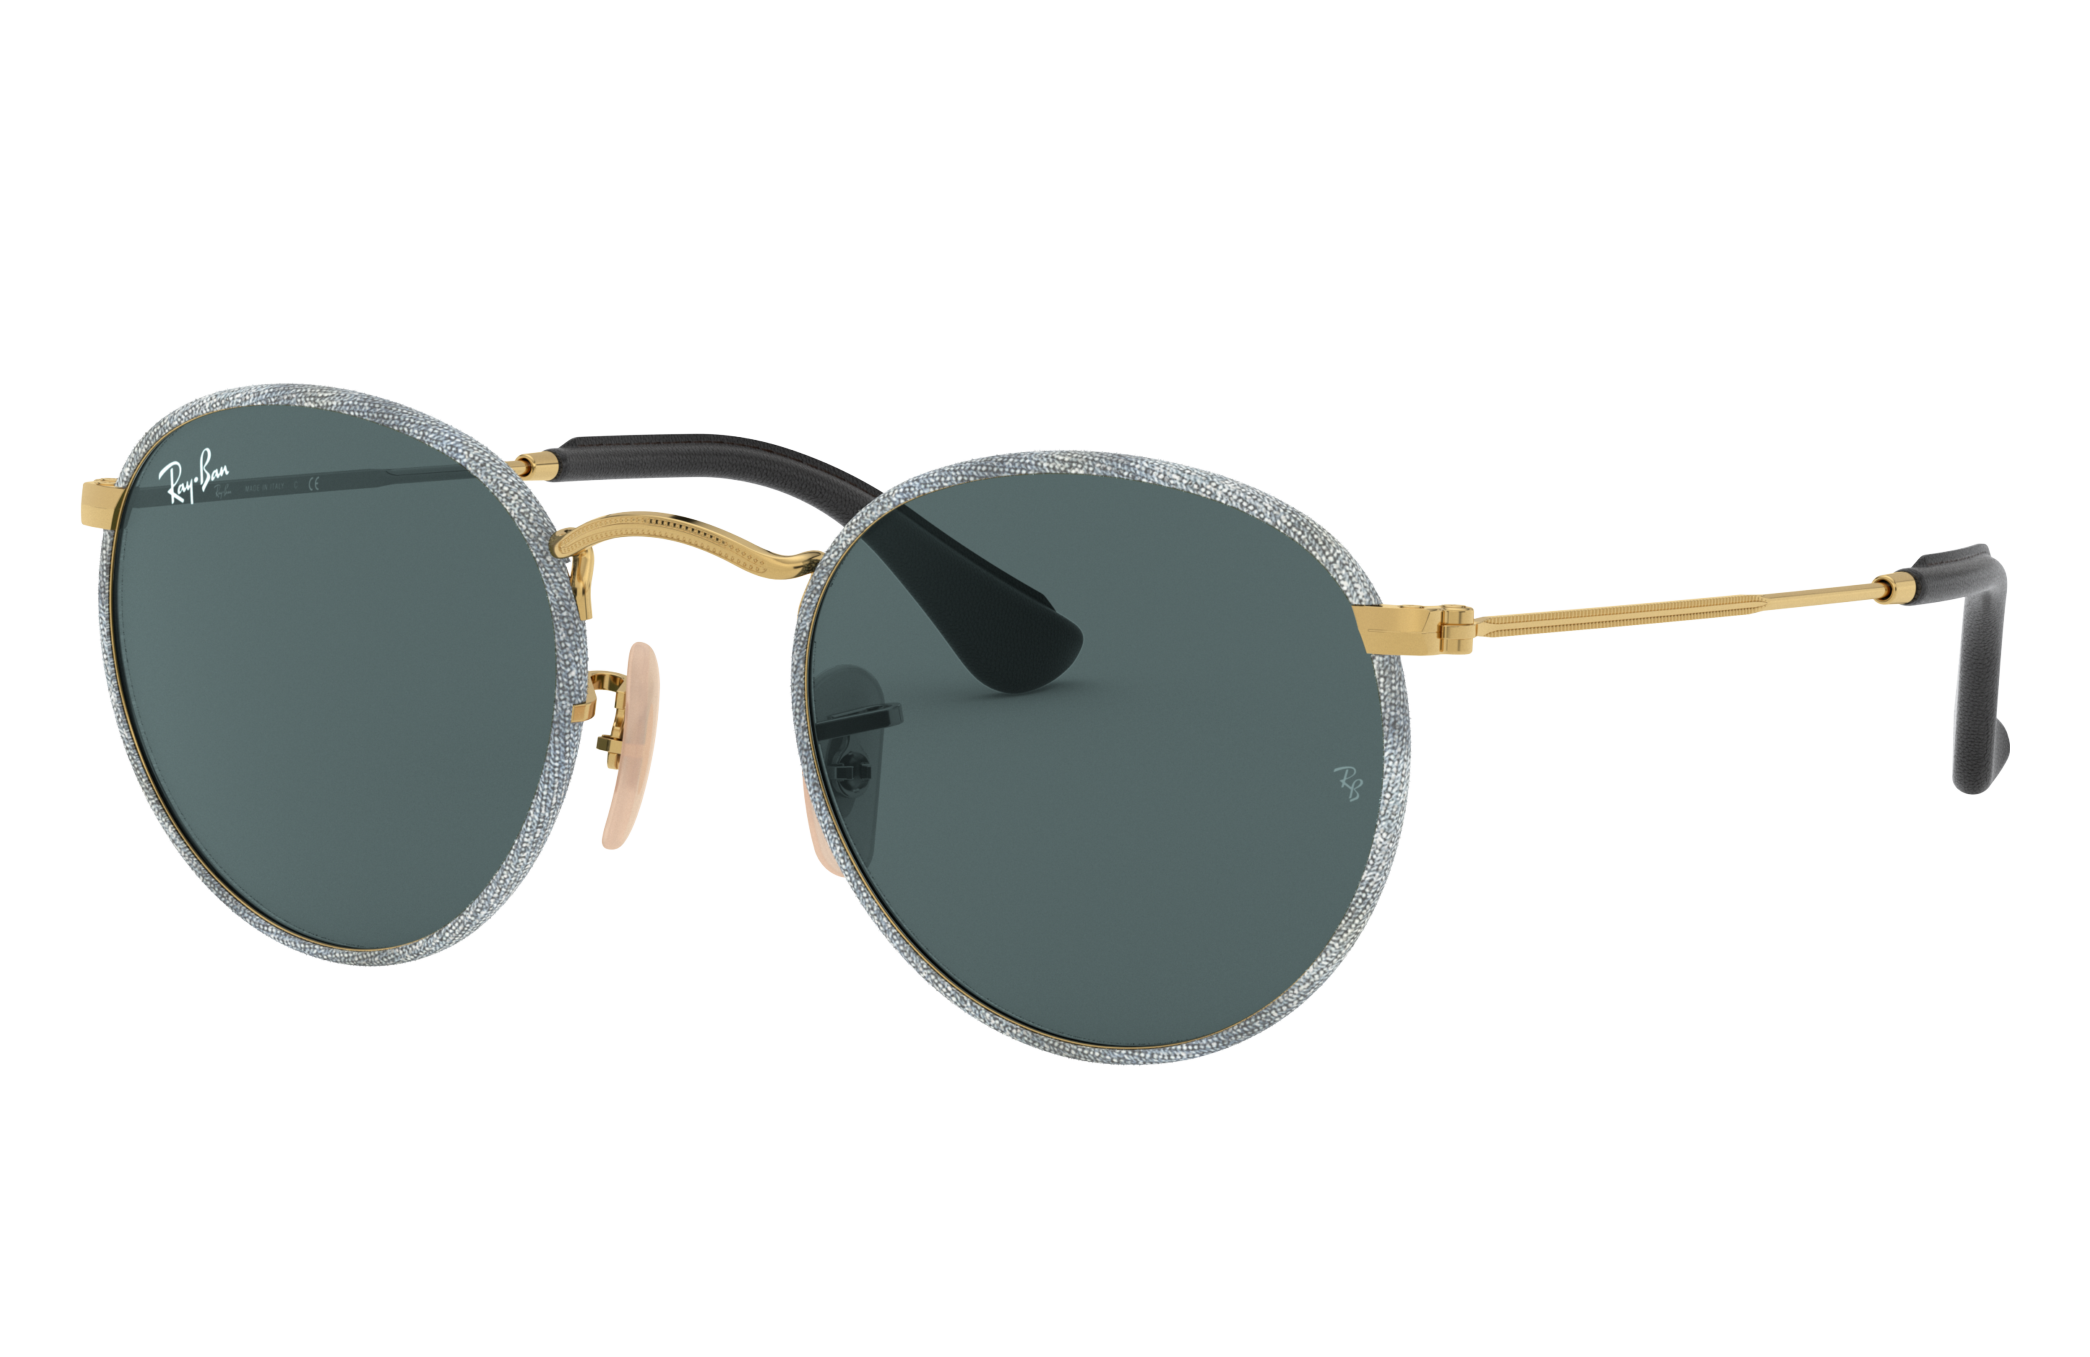 Ray-Ban Round Craft Gold, Blue Lenses - RB3475Q